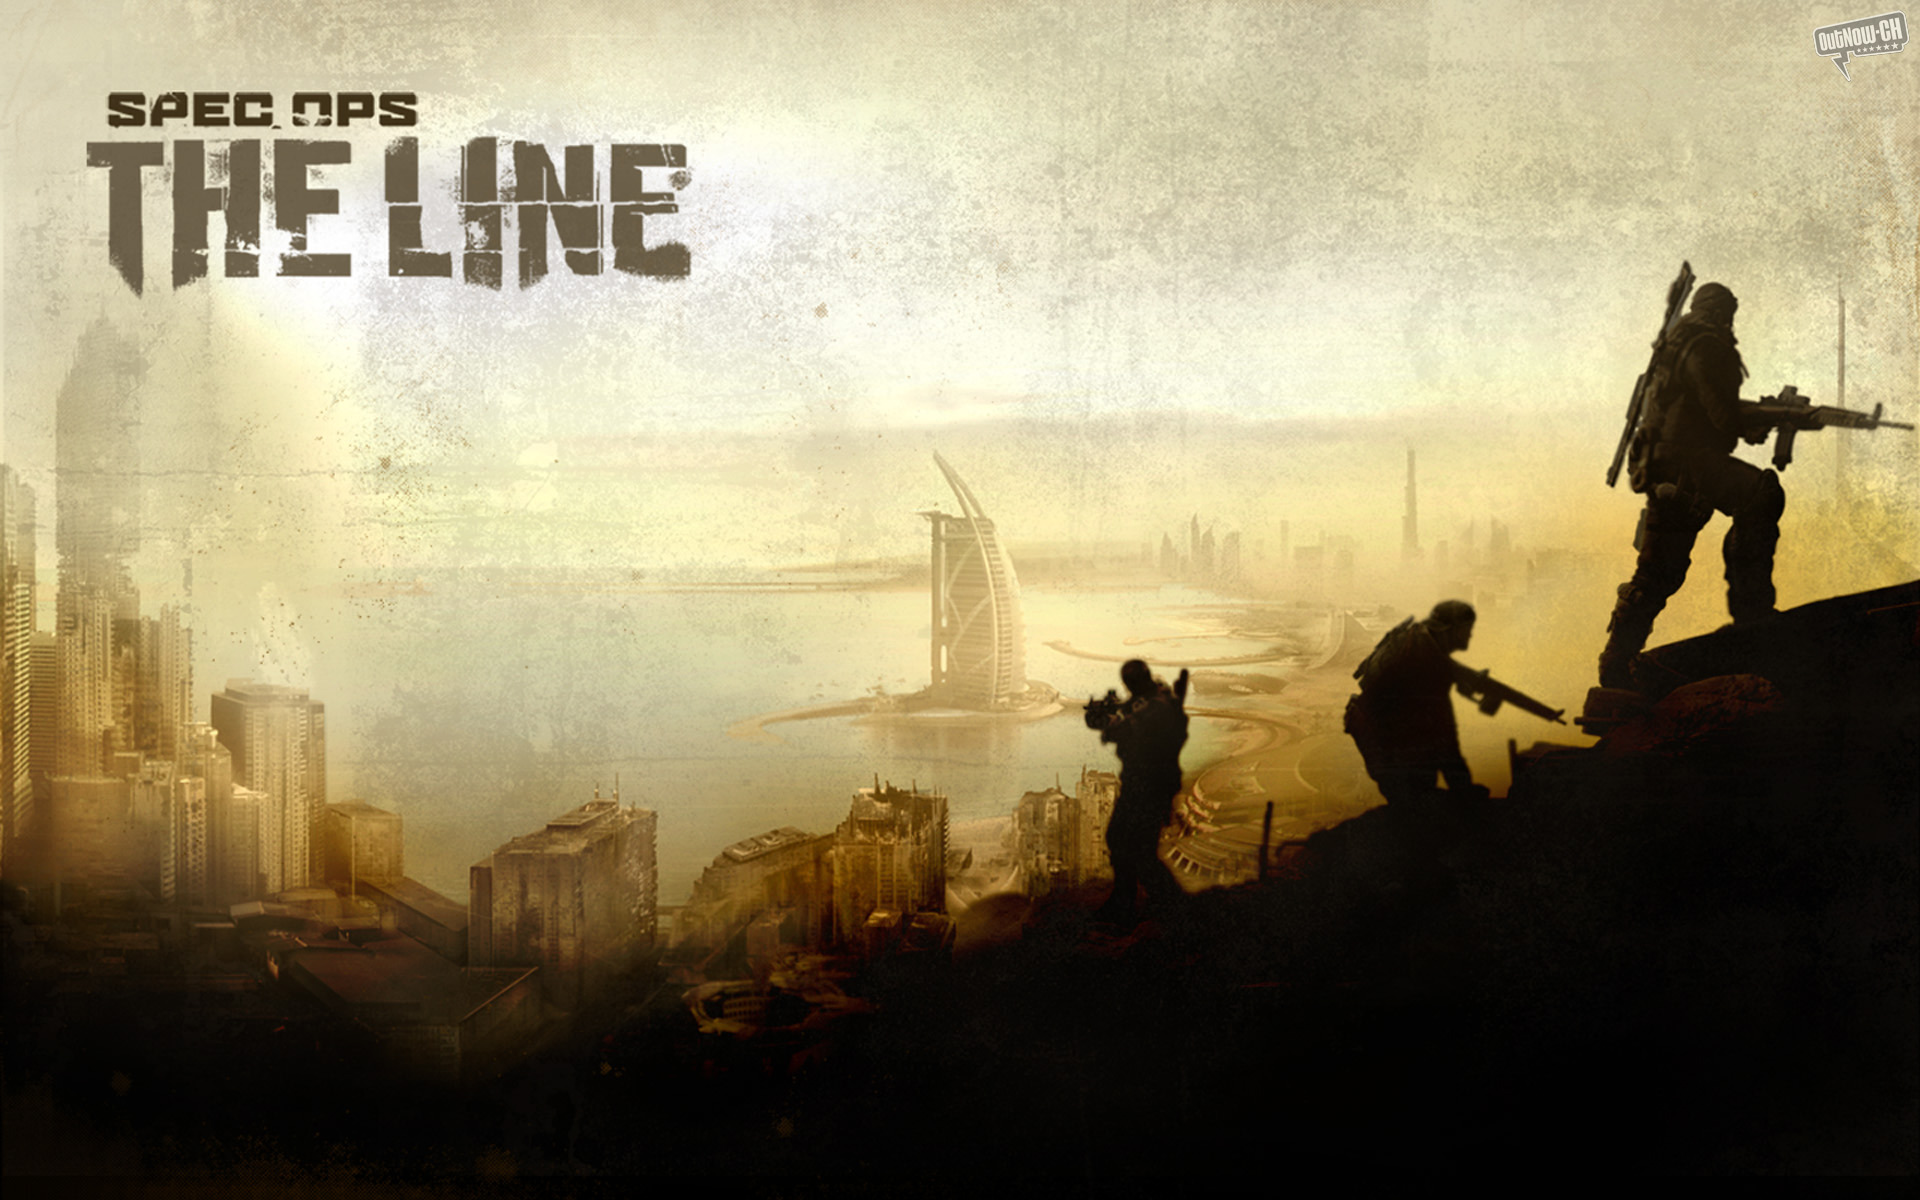 Motivational Quotes Wallpaper Iphone 4 Spec Ops The Line Wallpapers Spec Ops The Line Stock